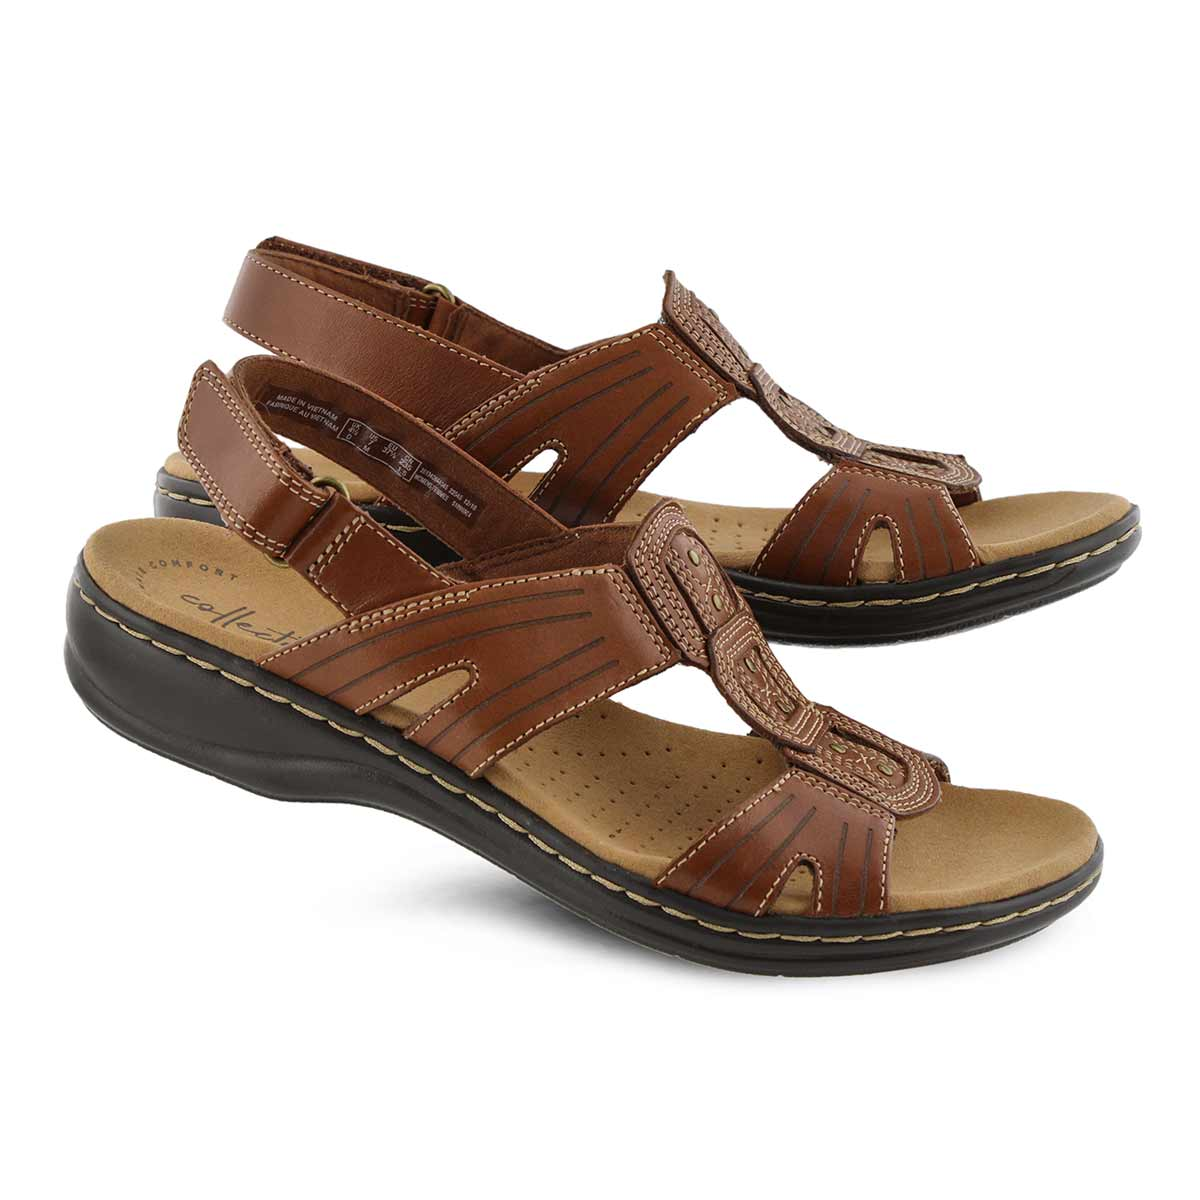 Lds Leisa Vine dark tan casual sandal